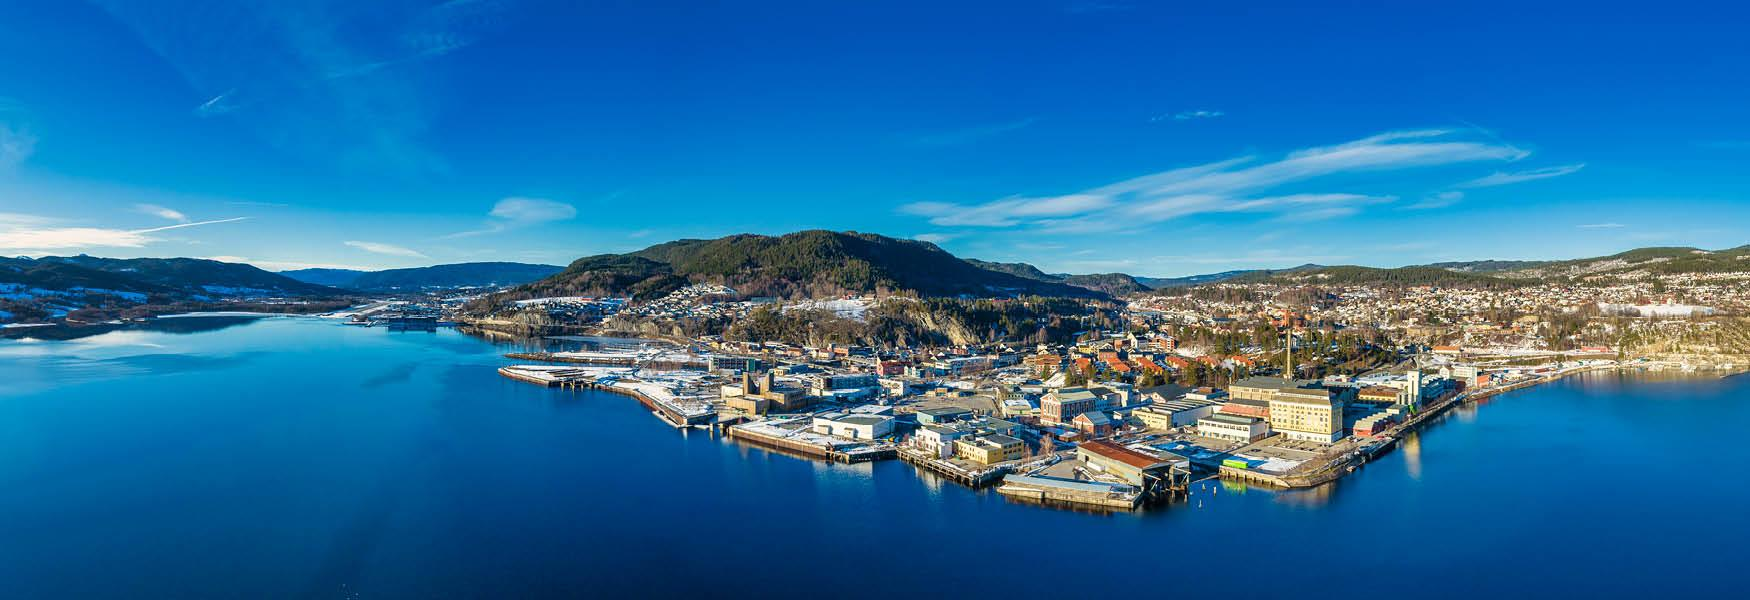 Welcome to Notodden - notodden